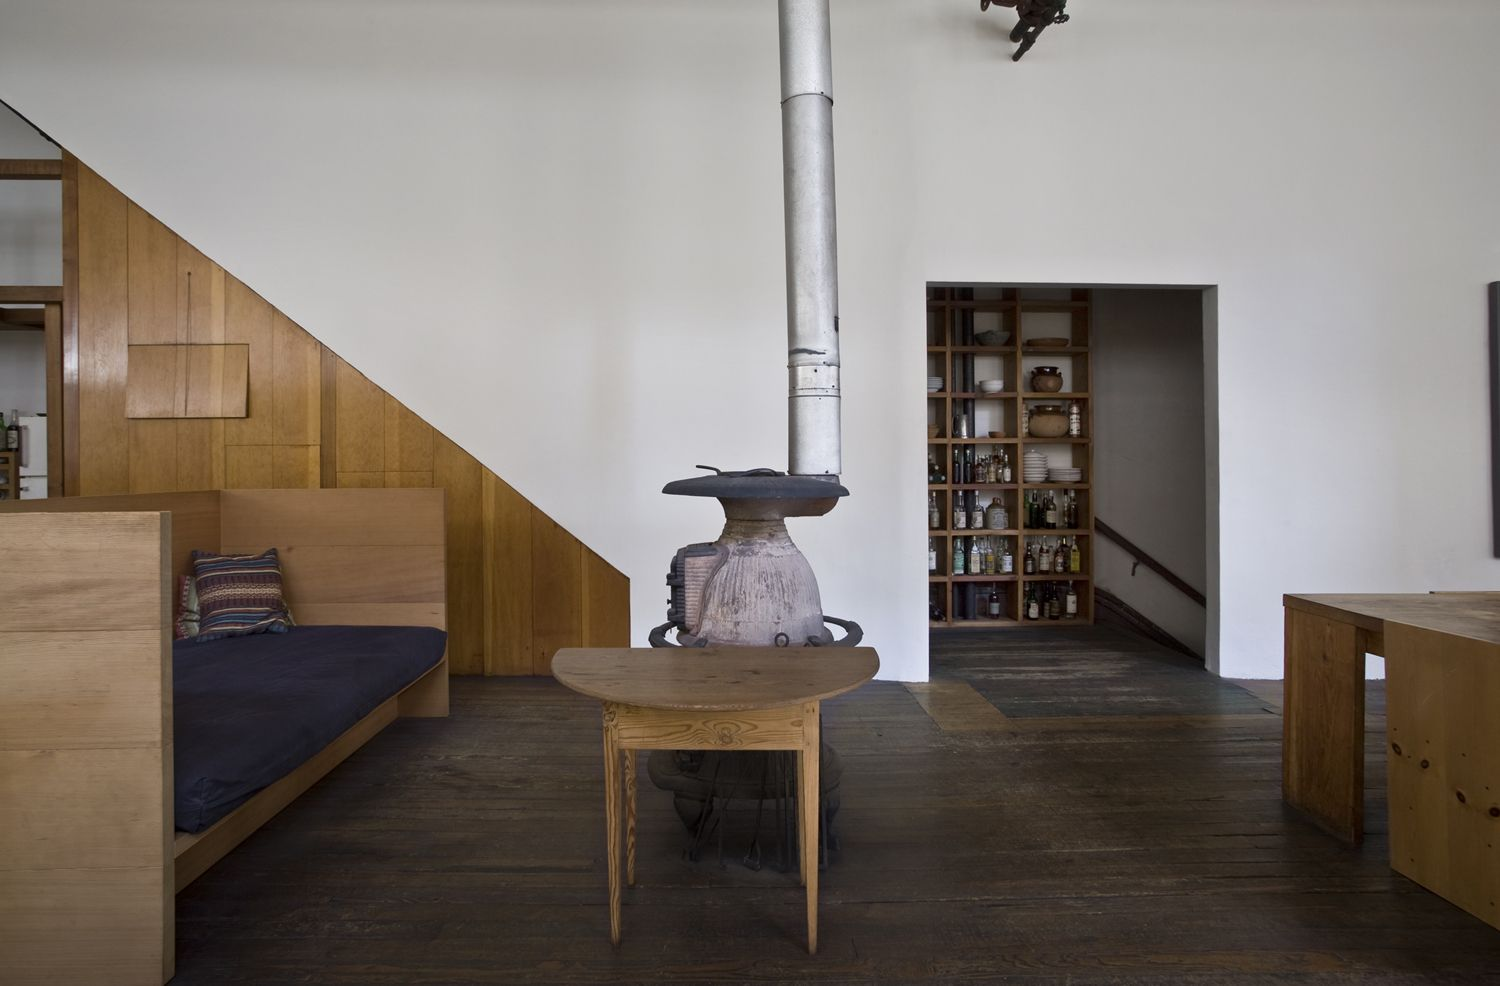 Donald Judd S House With Images Donald Judd Home House